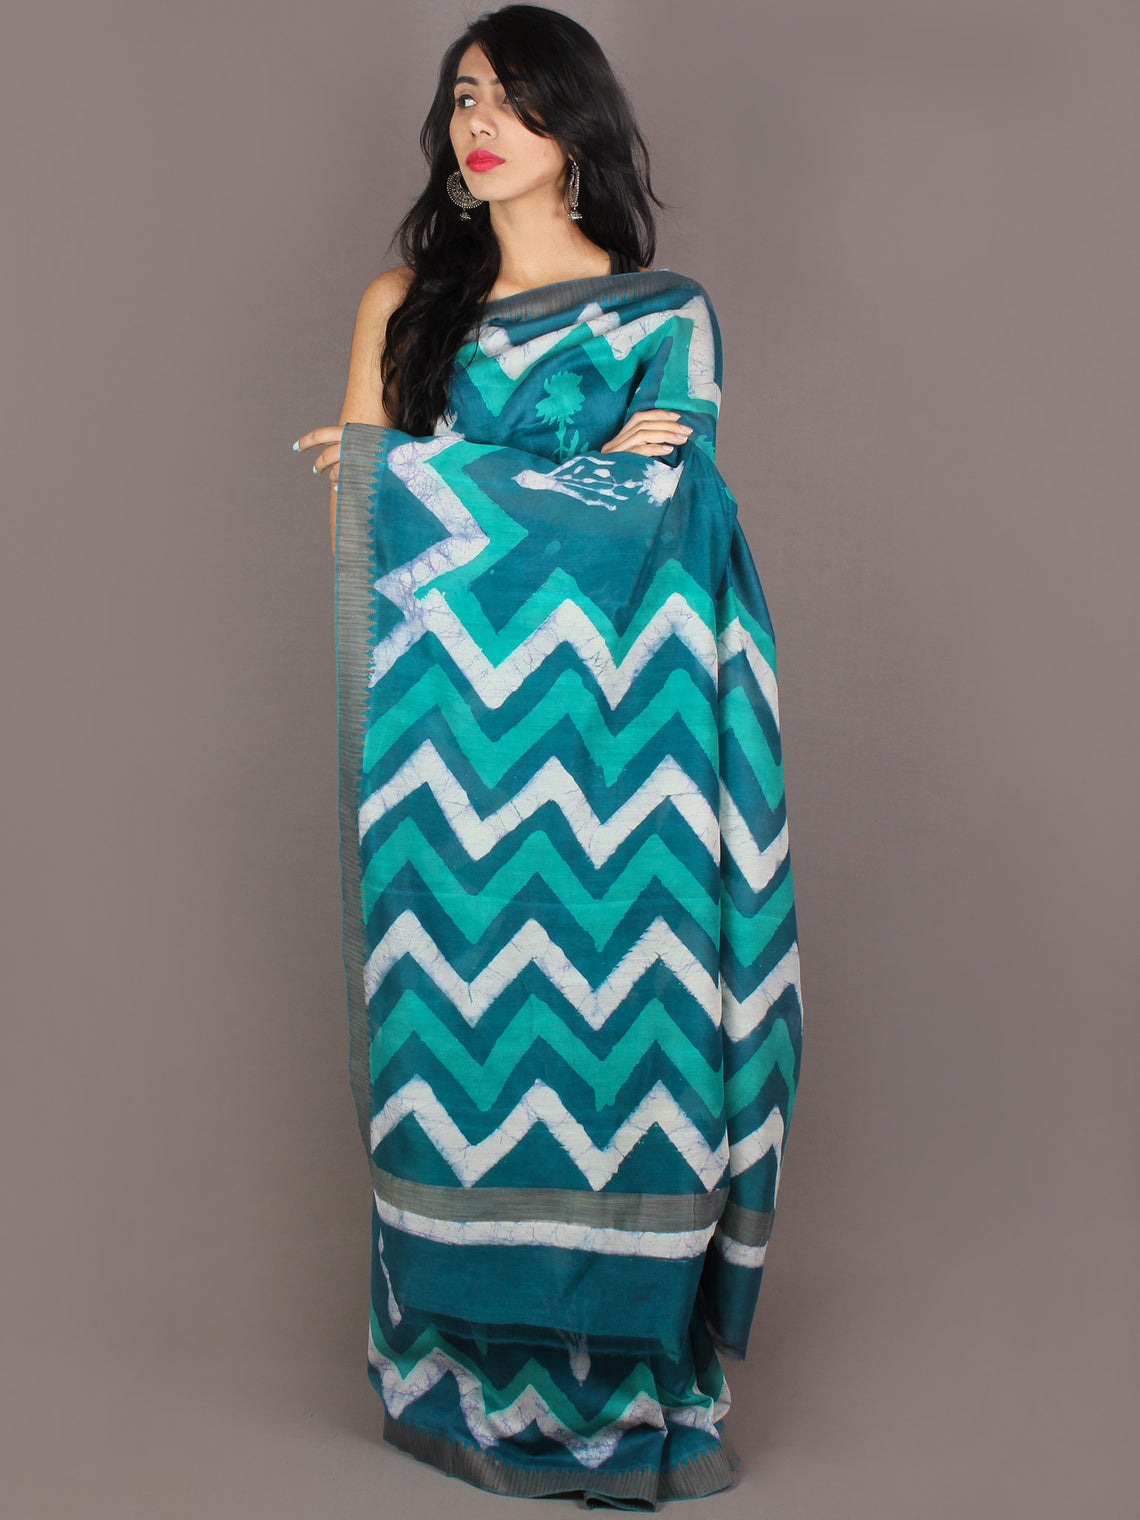 Teal Blue White Hand Block Printed in Natural Colors Chanderi Saree With Geecha Border - S031701001